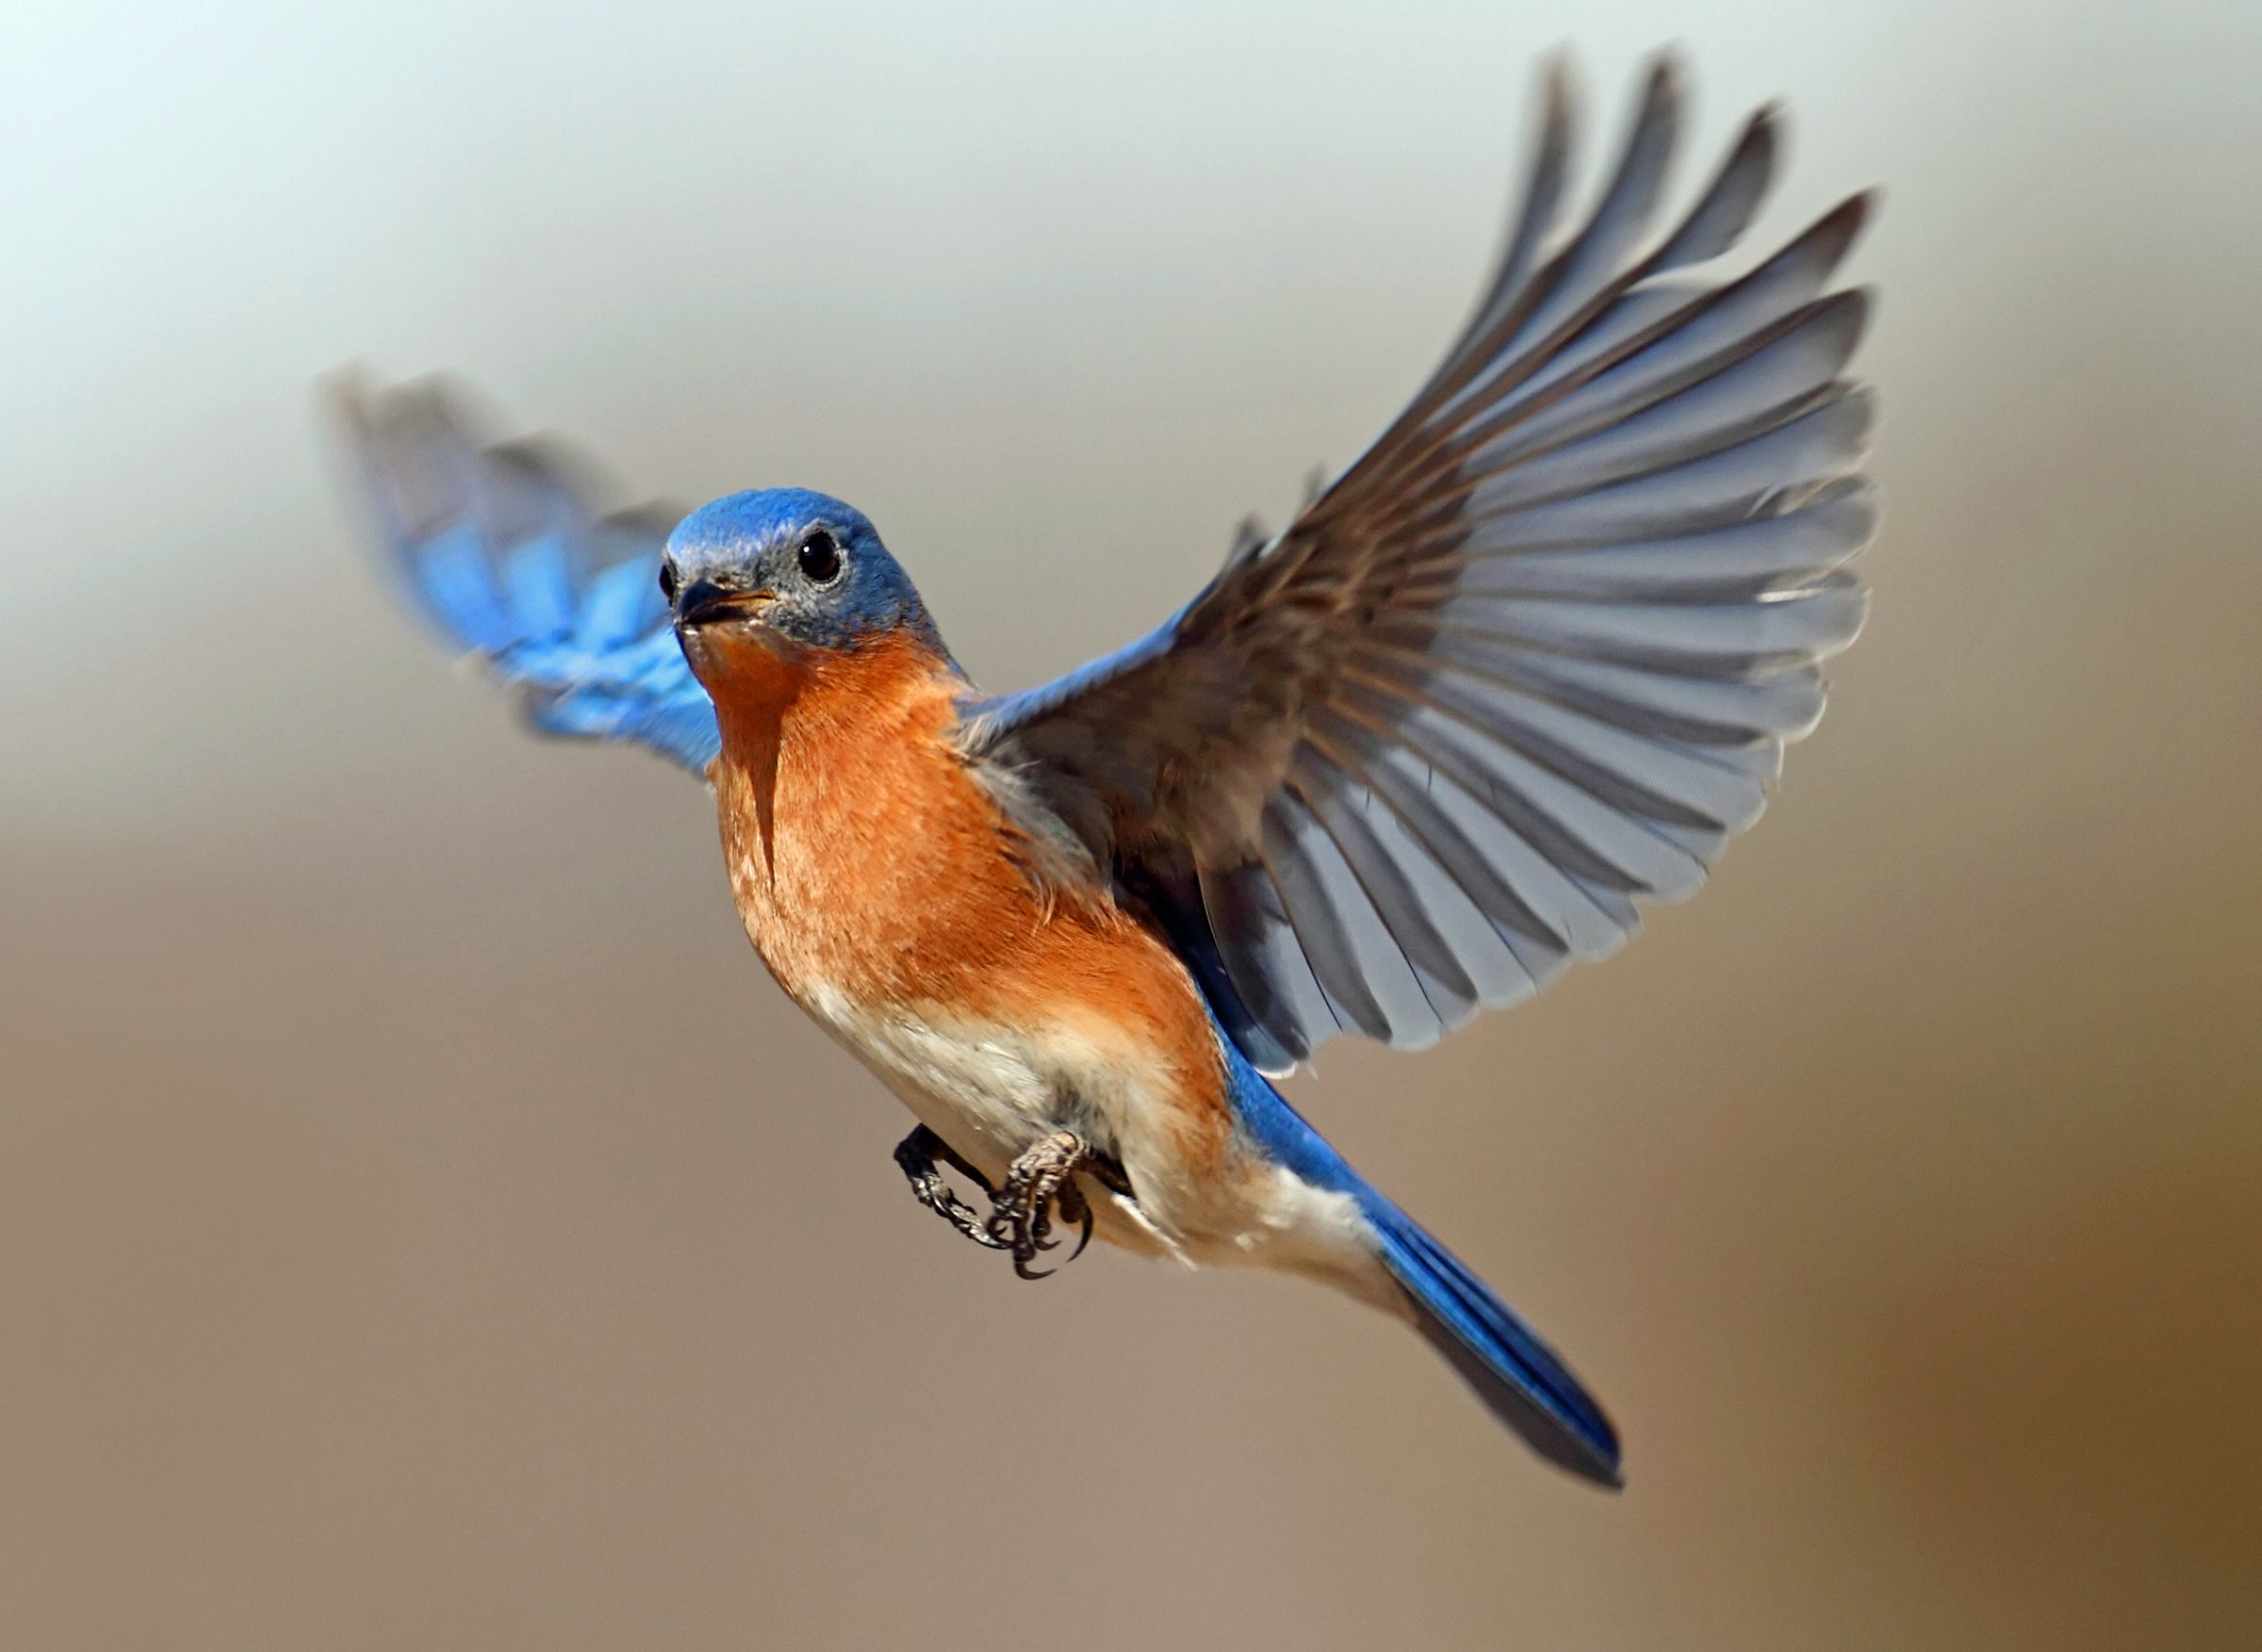 Eastern bluebird size